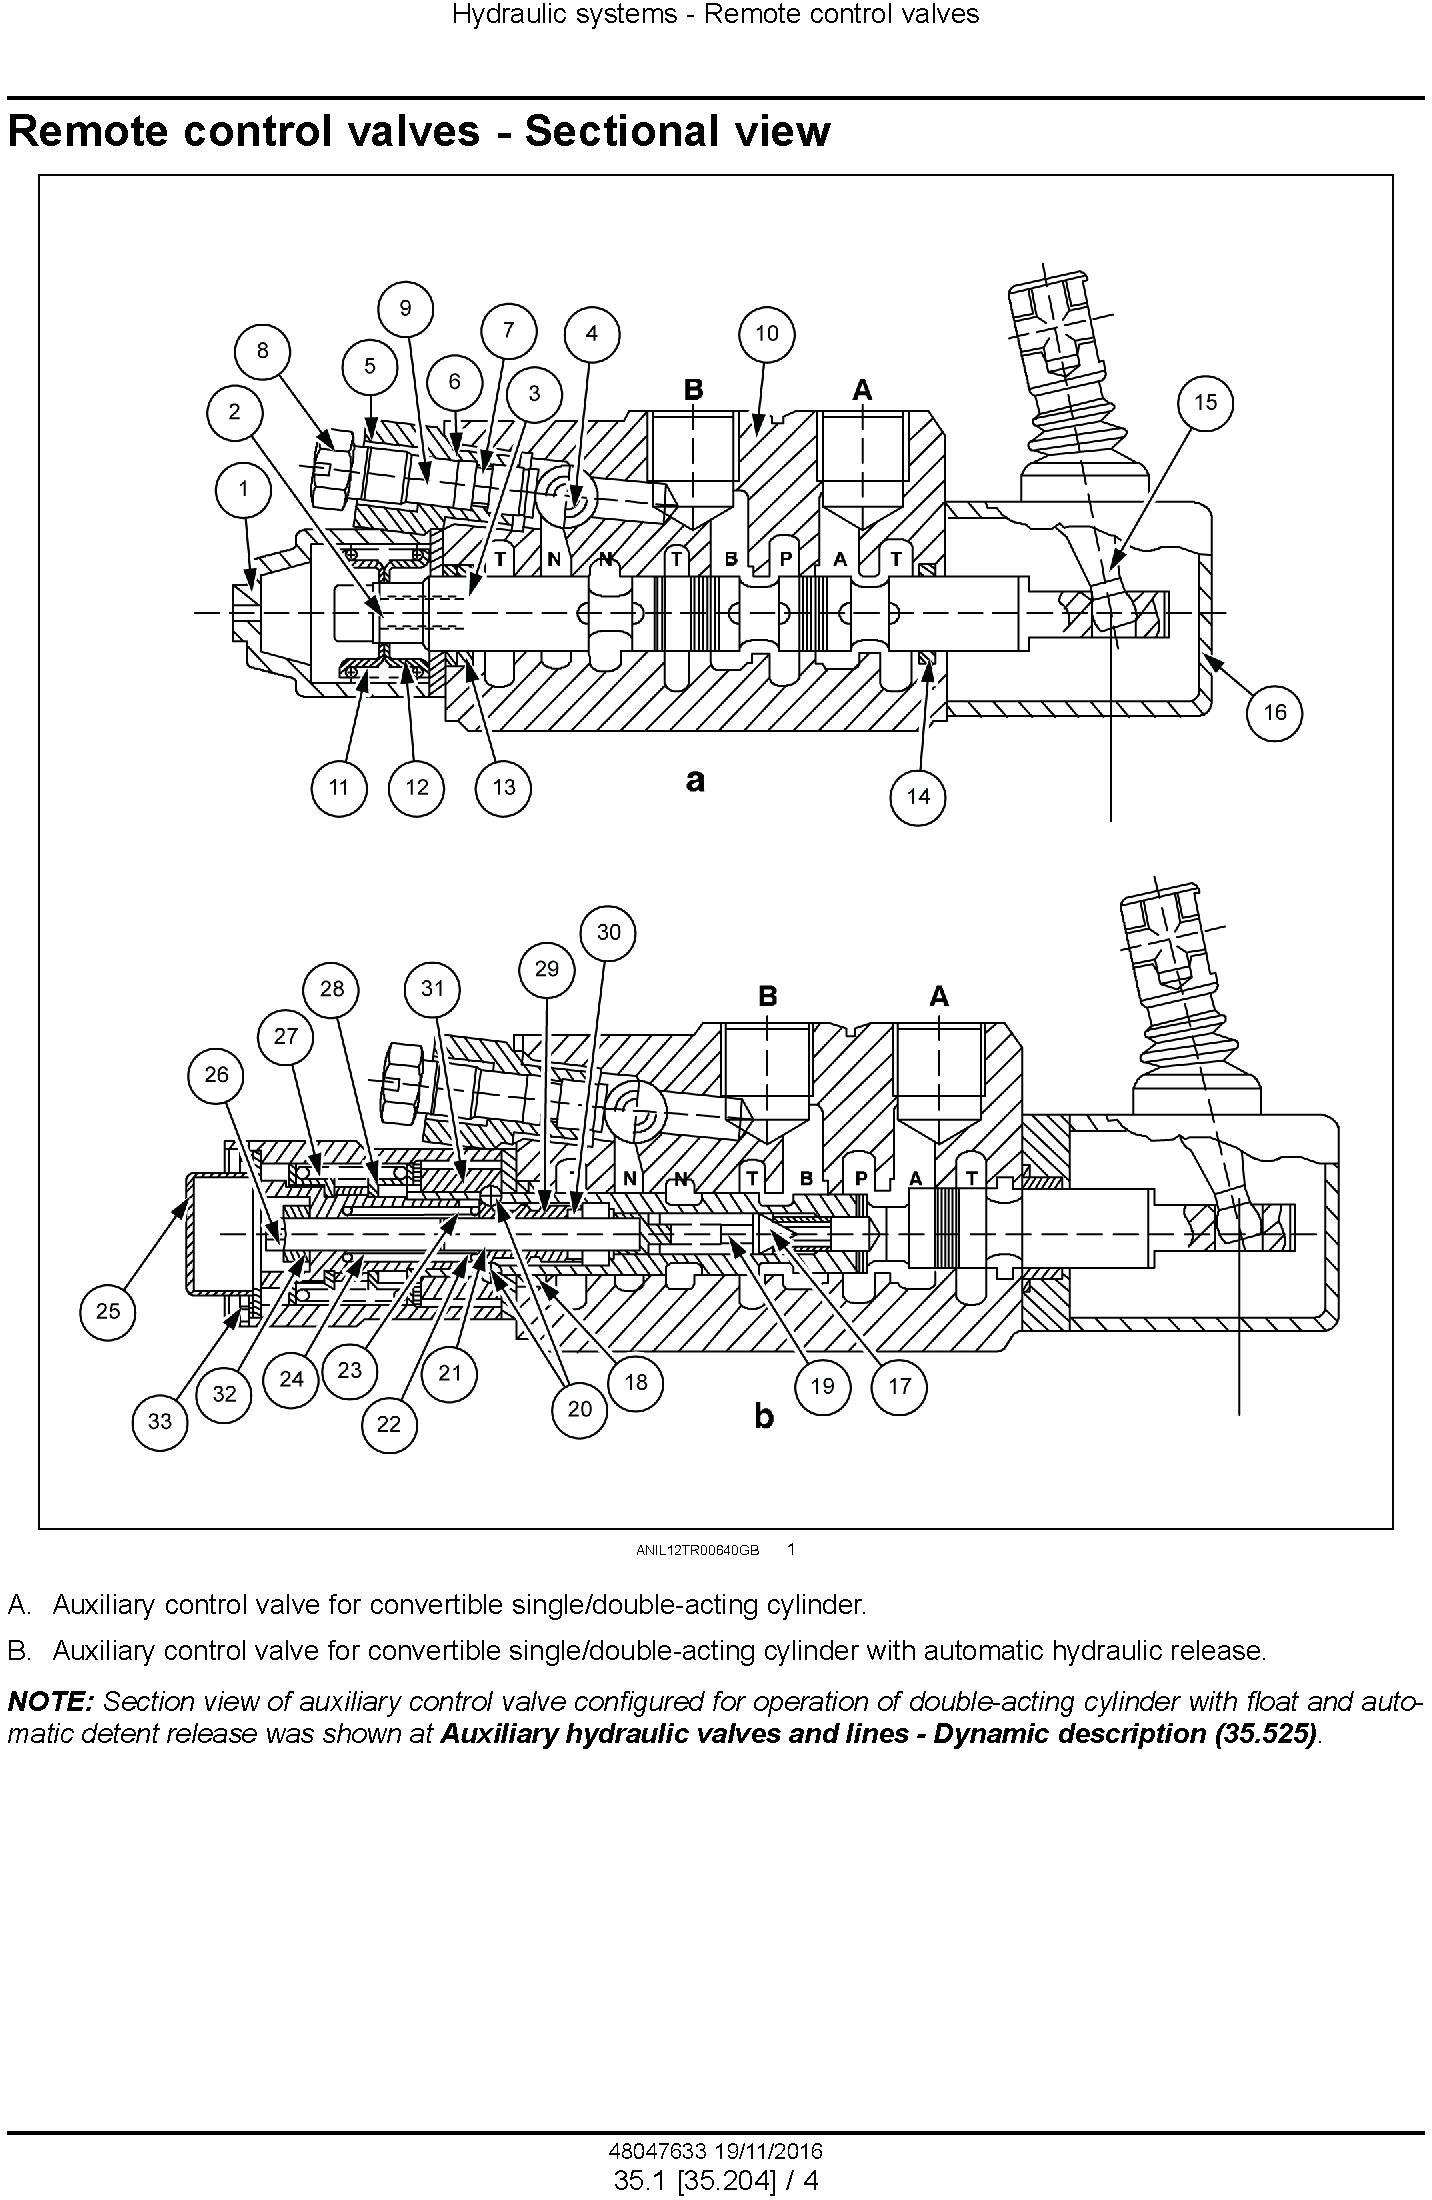 New Holland TD60, TD70, TD80, TD90, TD95 Straddle Tractor Service Manual (Asia, Africa) - 3